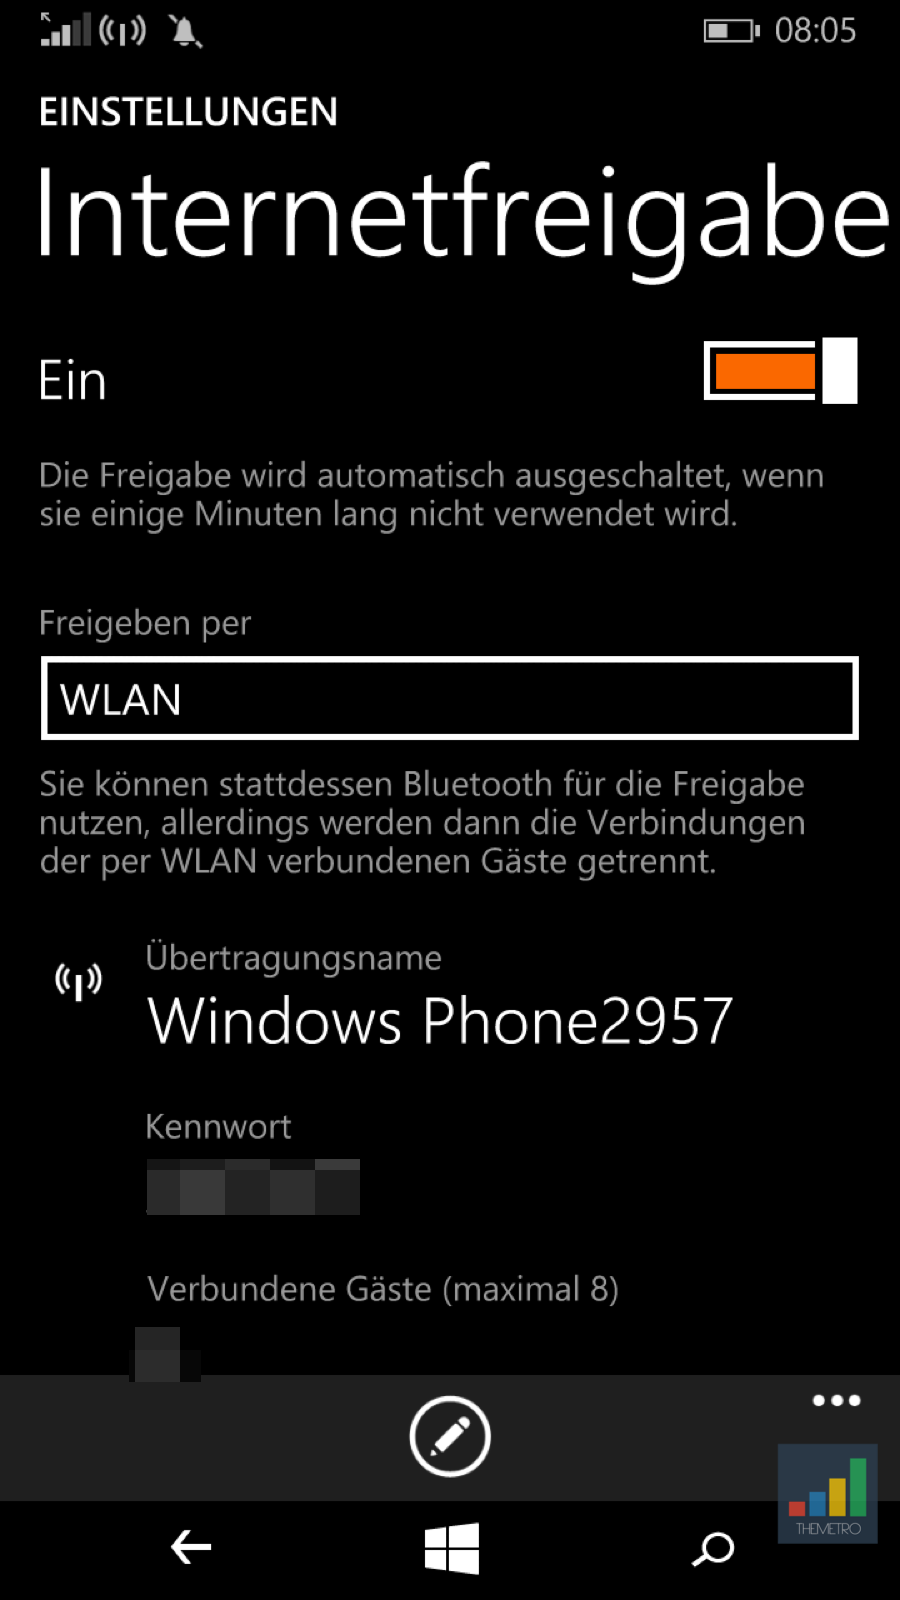 Windows Phone Internetfreigabe